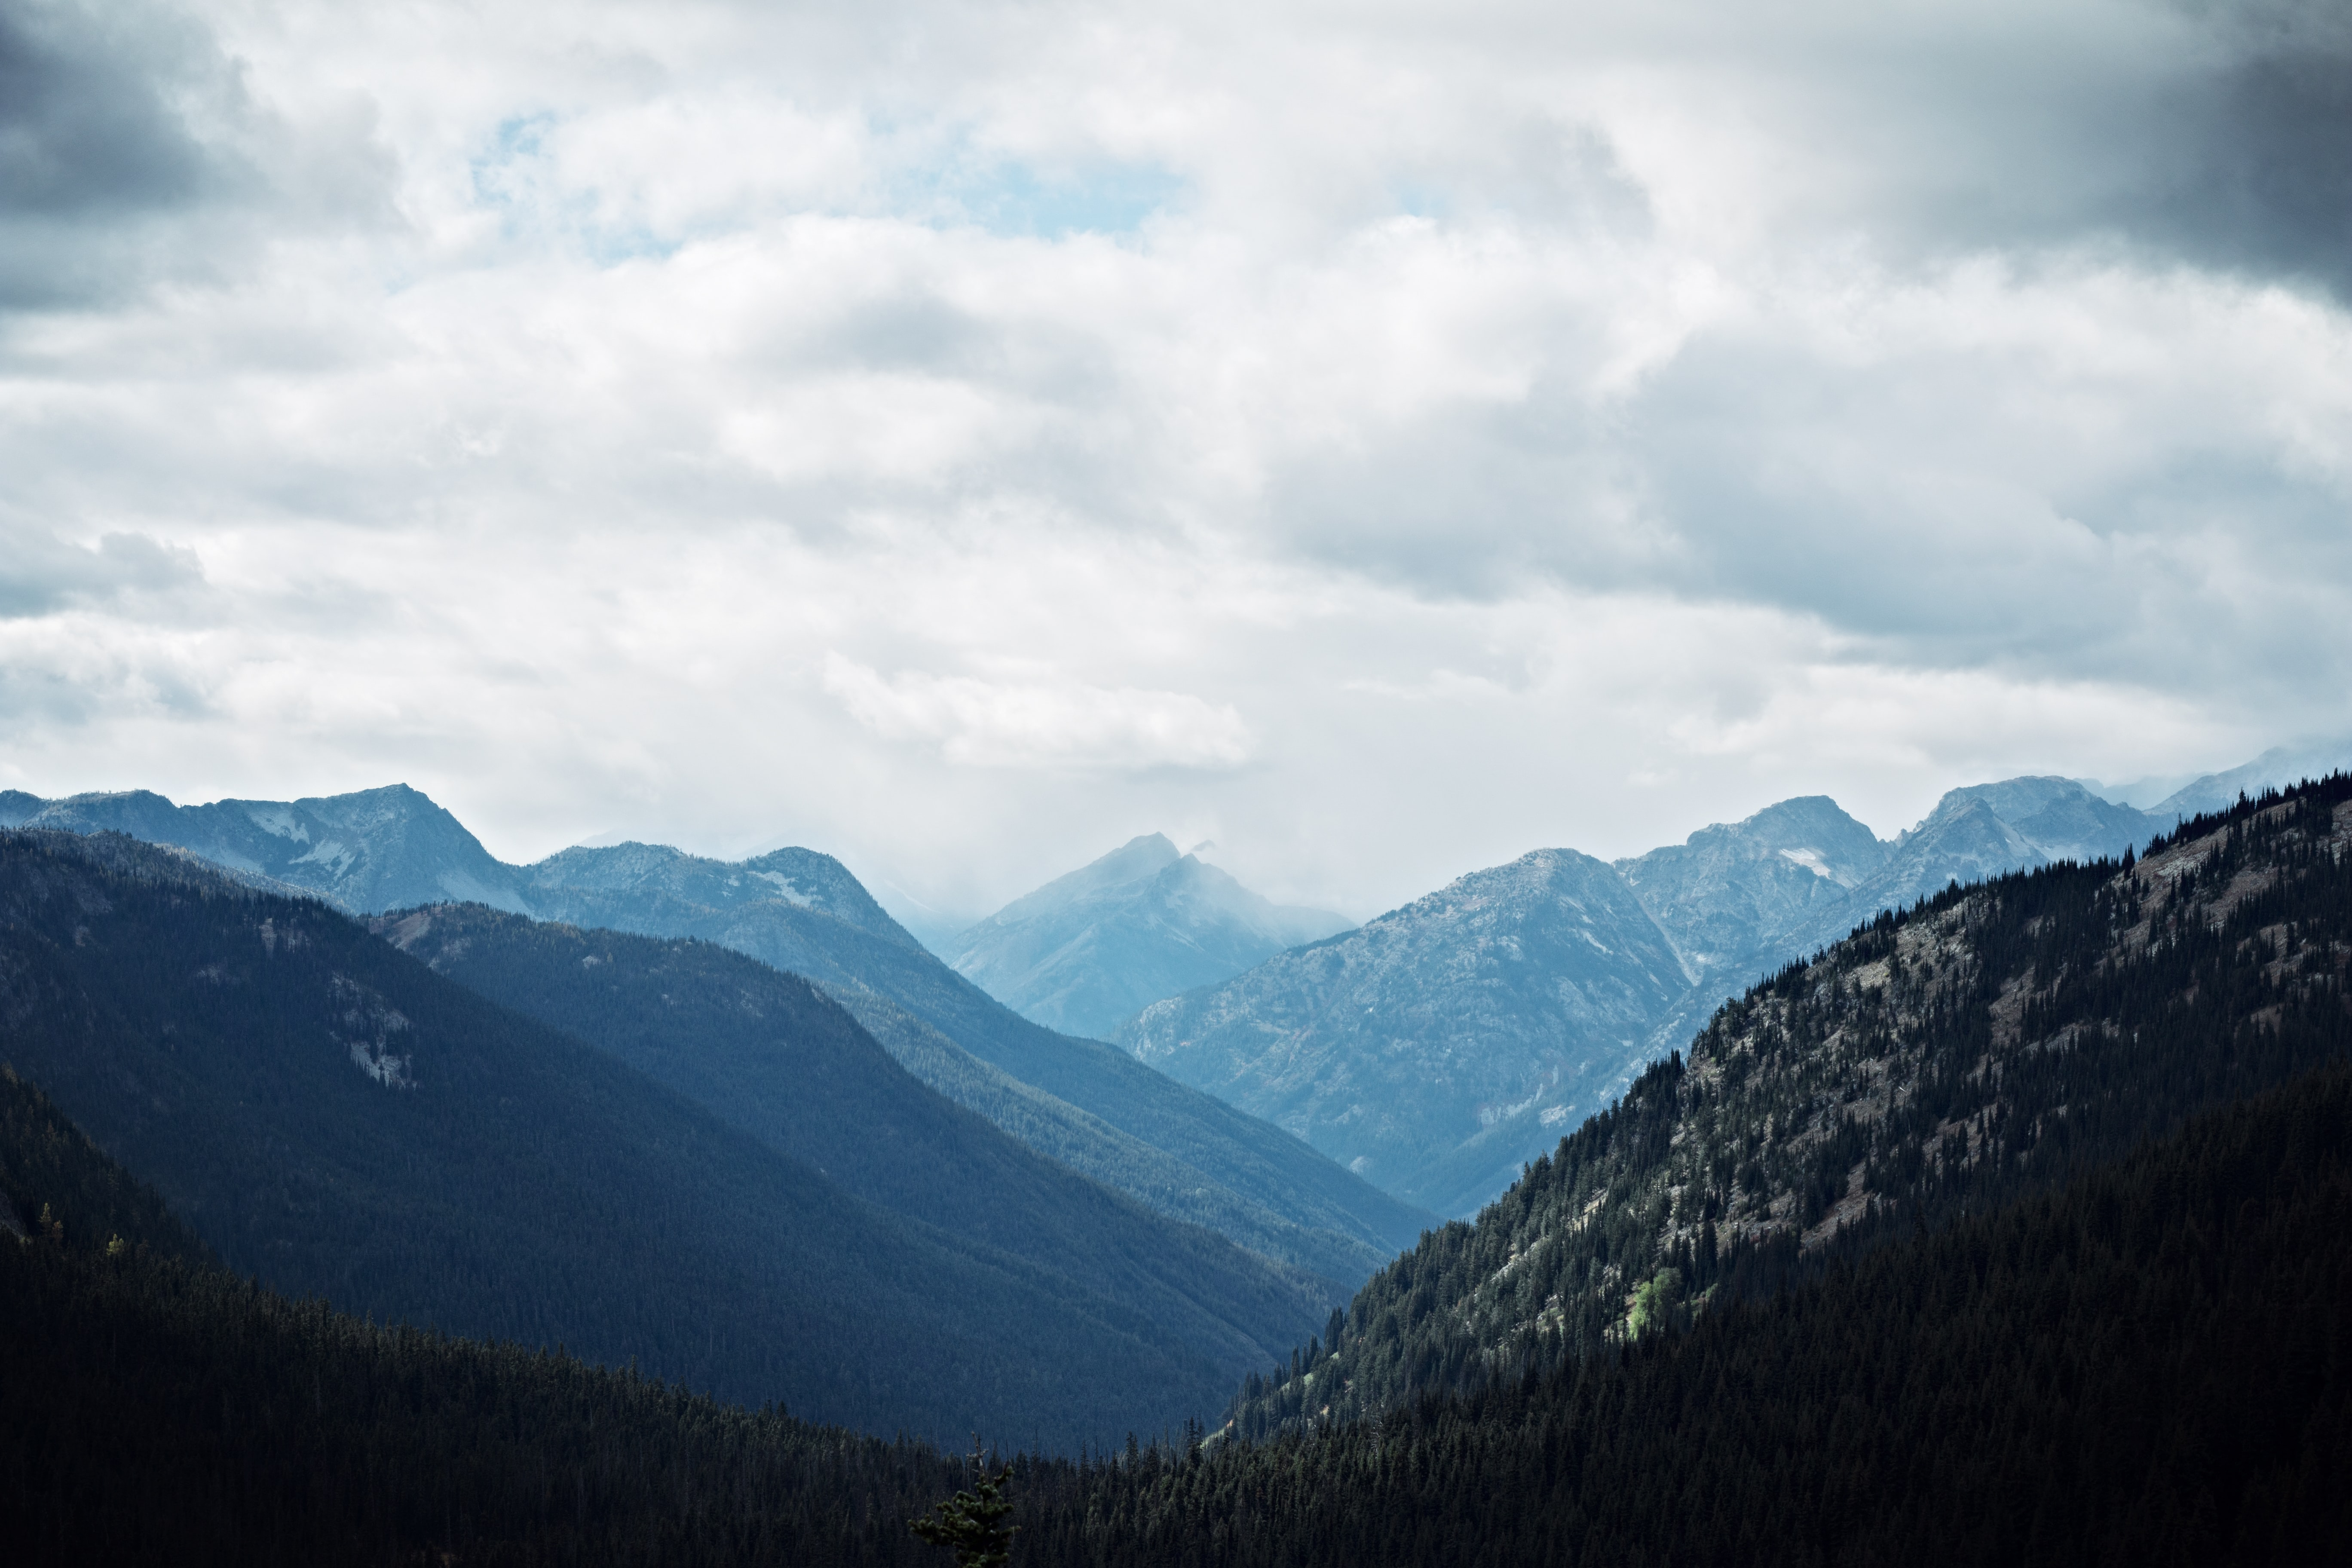 A valley in North Cascades National Park under overcast sky